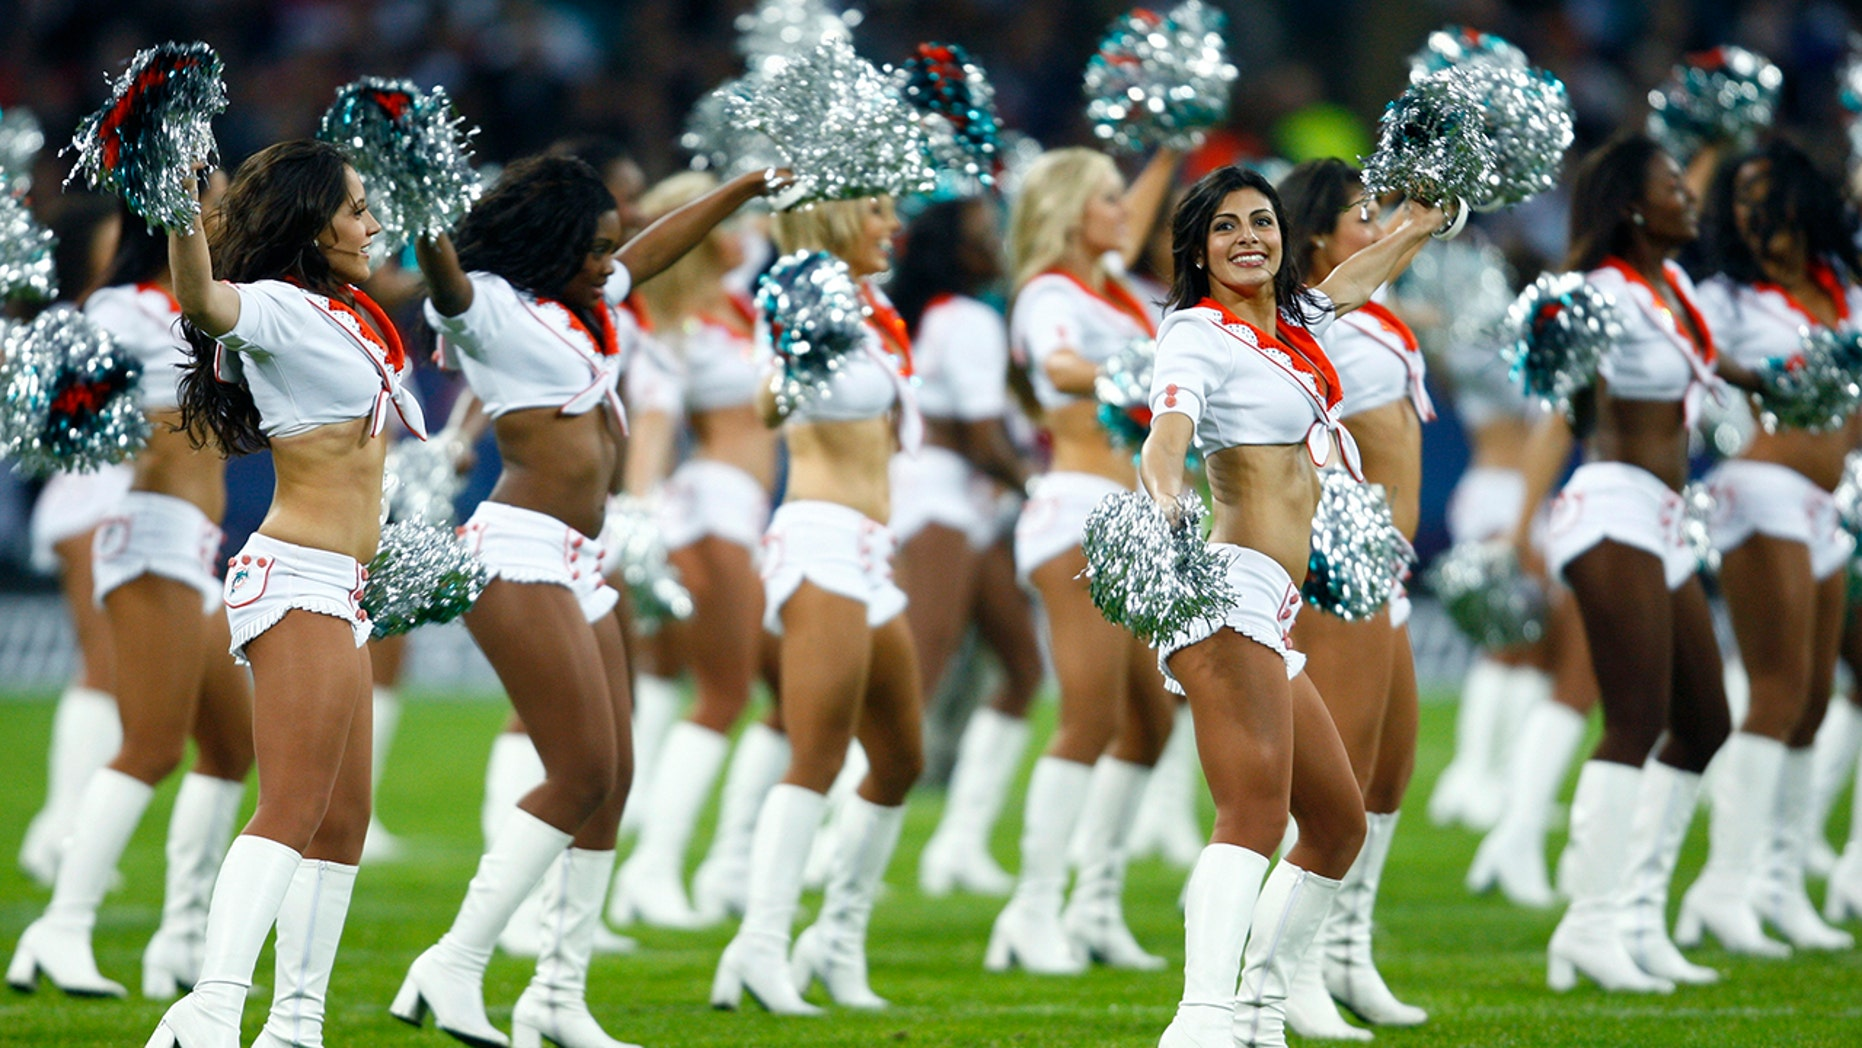 fdbb6d6877b Ex-Miami Dolphins cheerleader claims she was mocked over Christian ...